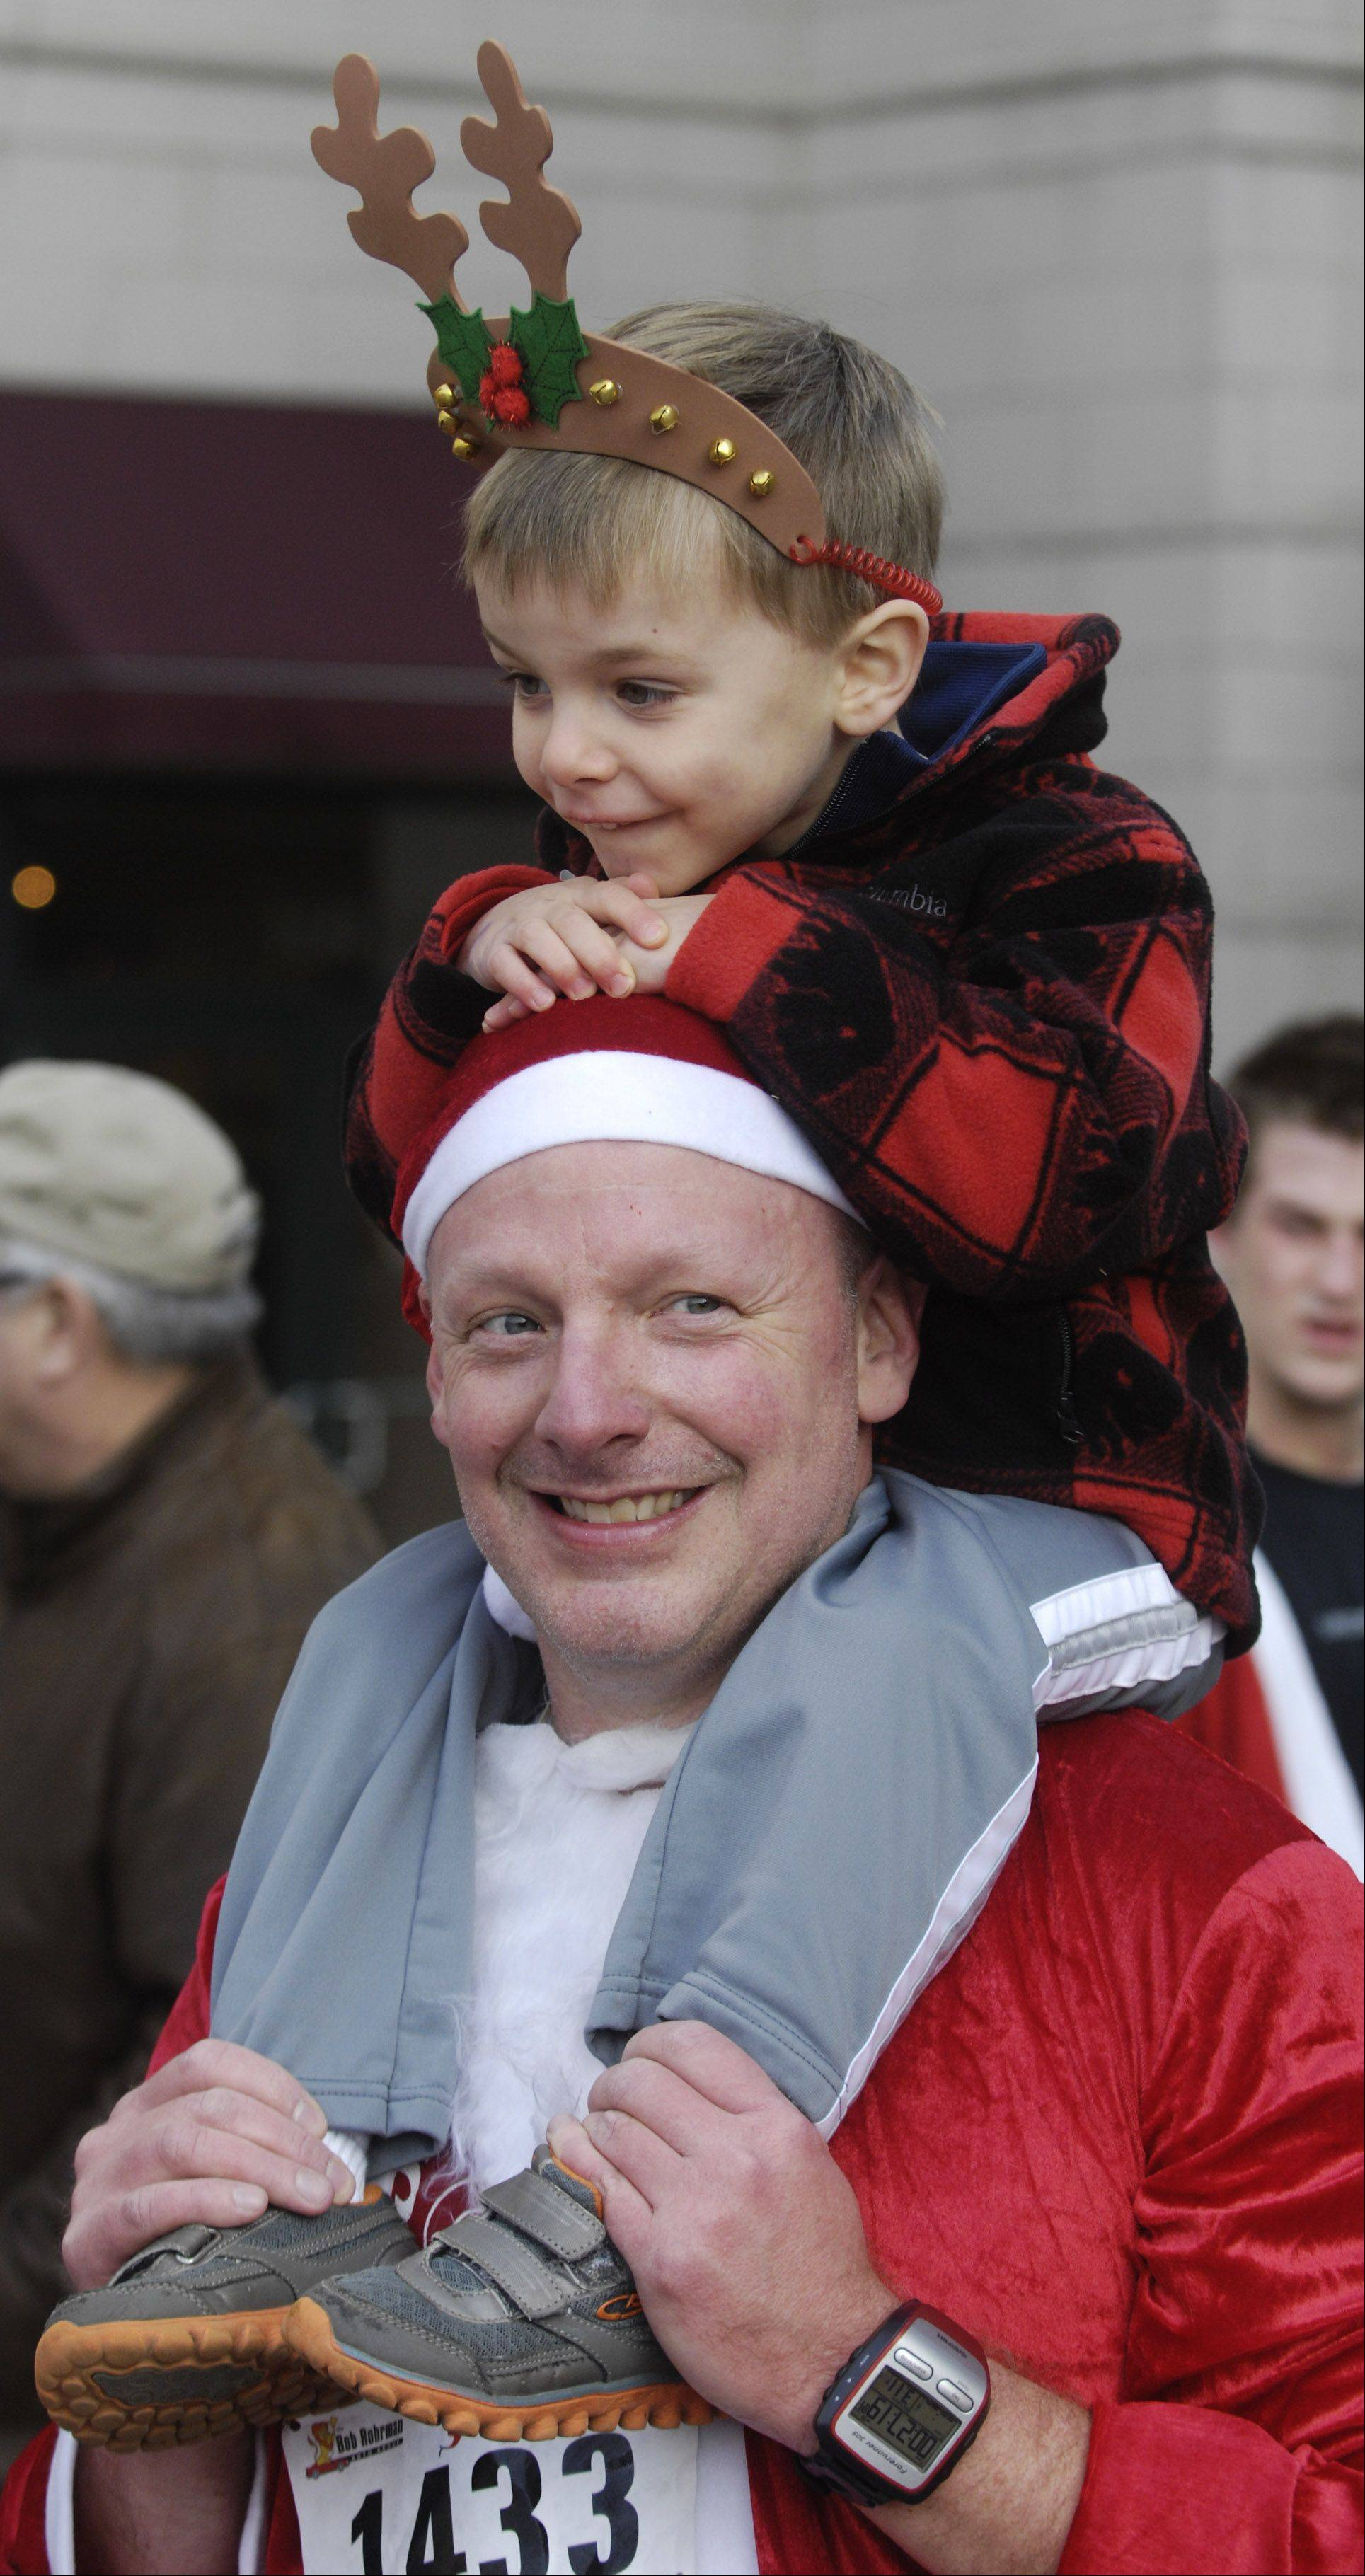 Tommy Wagner, 3, of Mount Prospect is seated on the shoulders of his dad, Ken, following Saturday's 5k Santa Run in Arlington Heights. Tommy turns four on Christmas Day.